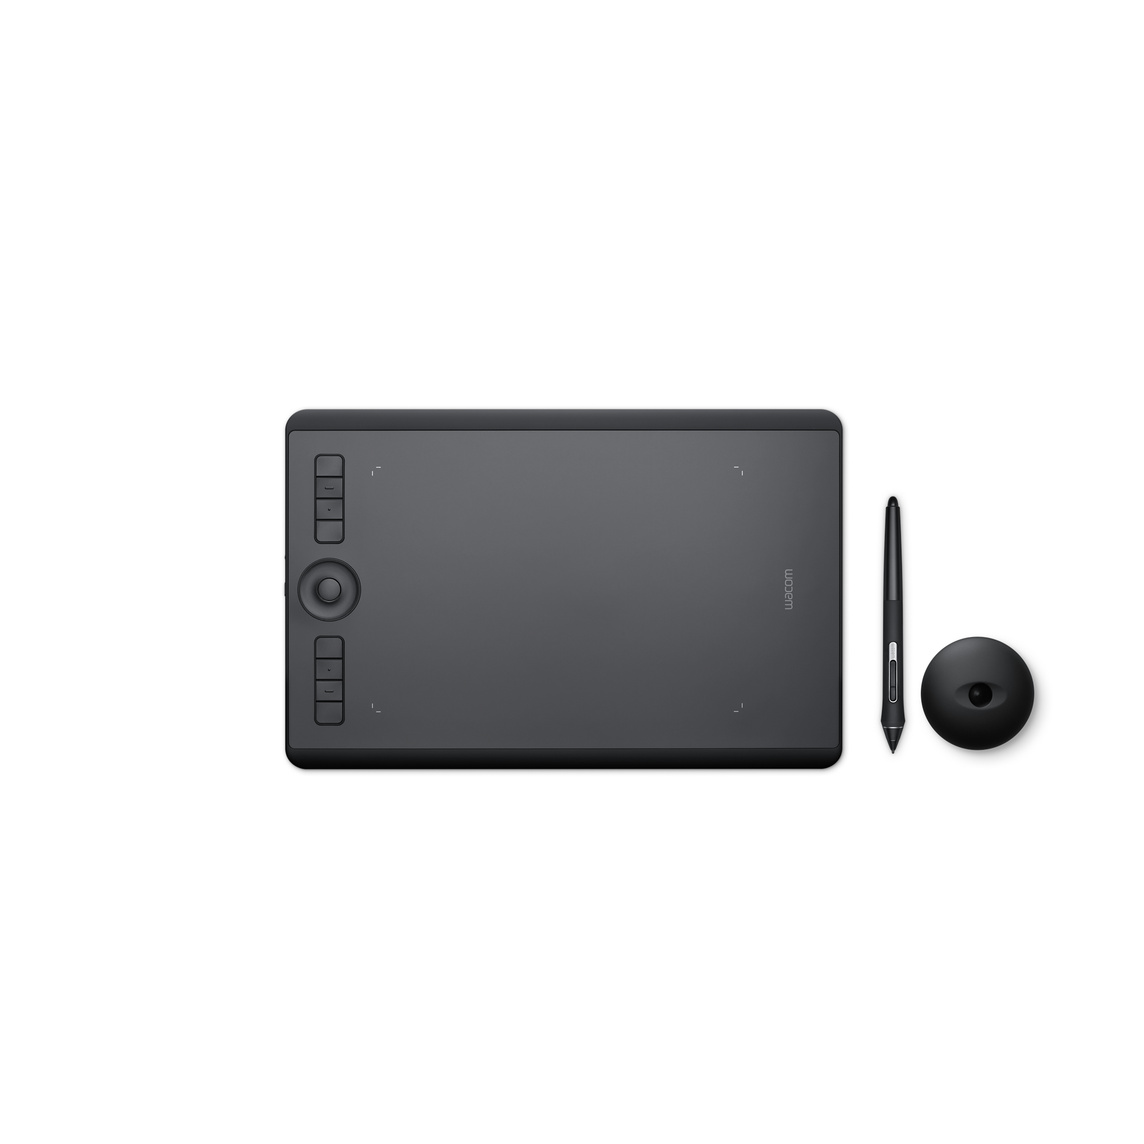 Wacom Intuos Pro Graphic Drawing Tablet - Medium